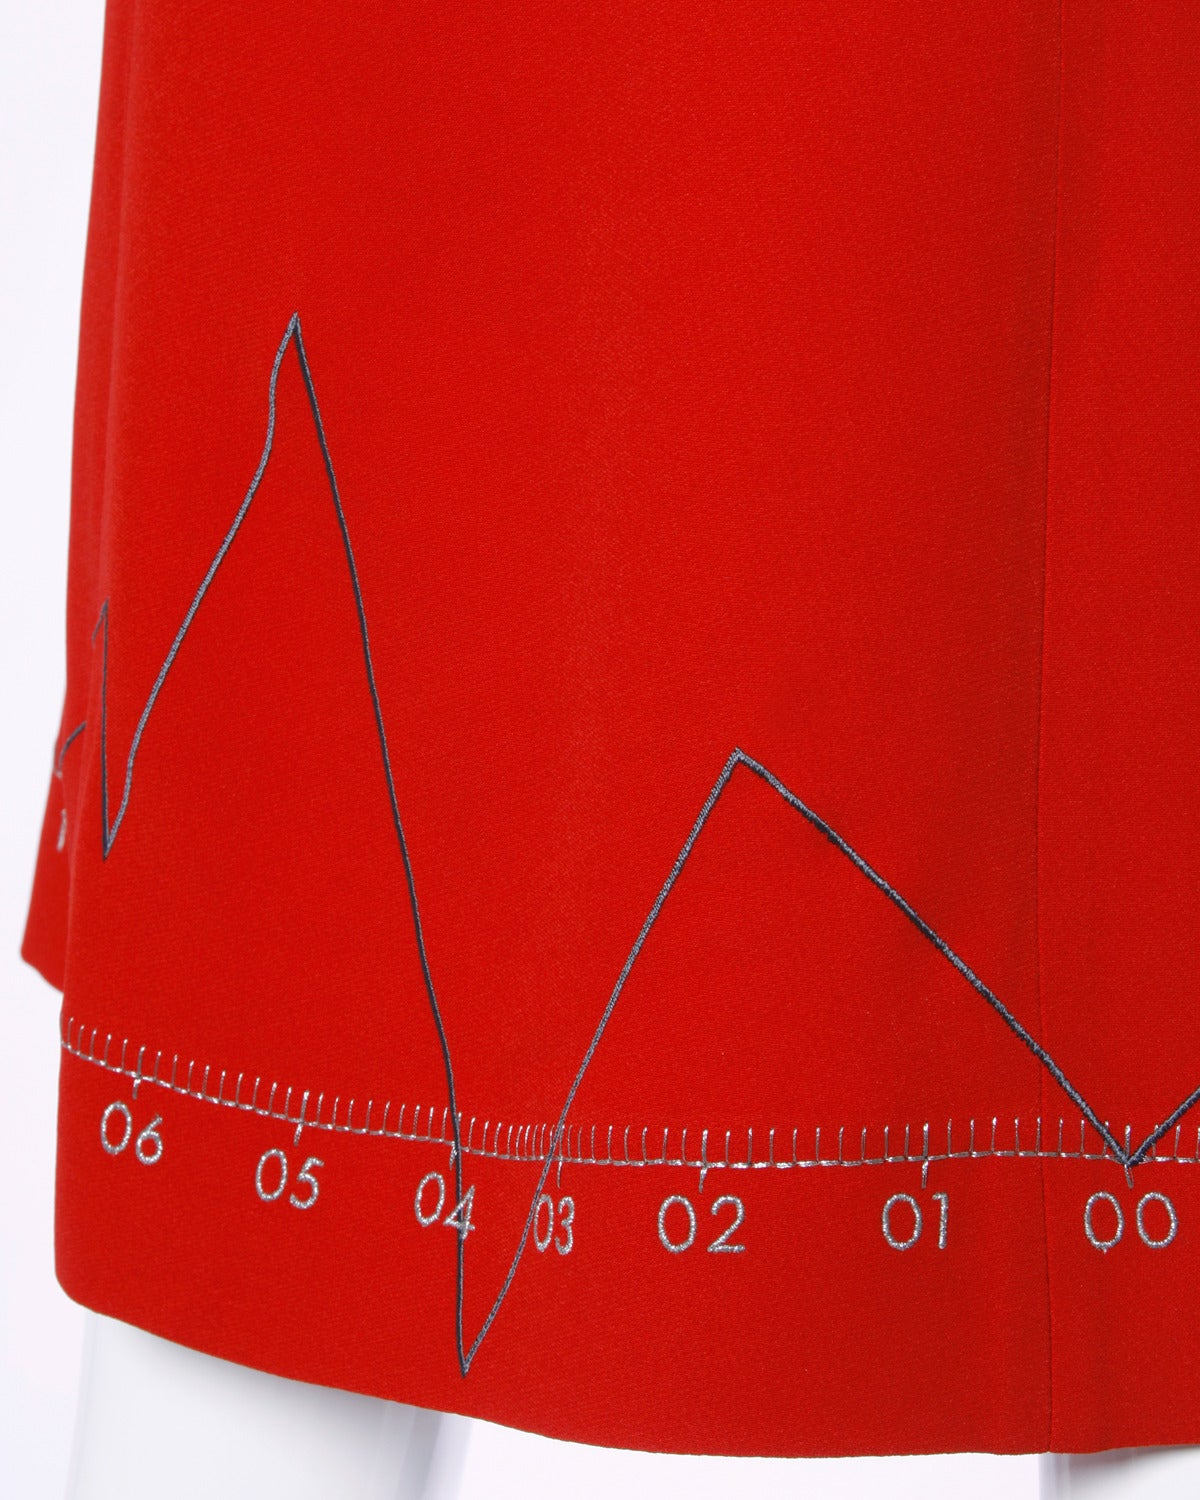 """Iconic Moschino Vintage 1990s 90s """"Love Charts + Graphs"""" Valentines Red Dress 5"""